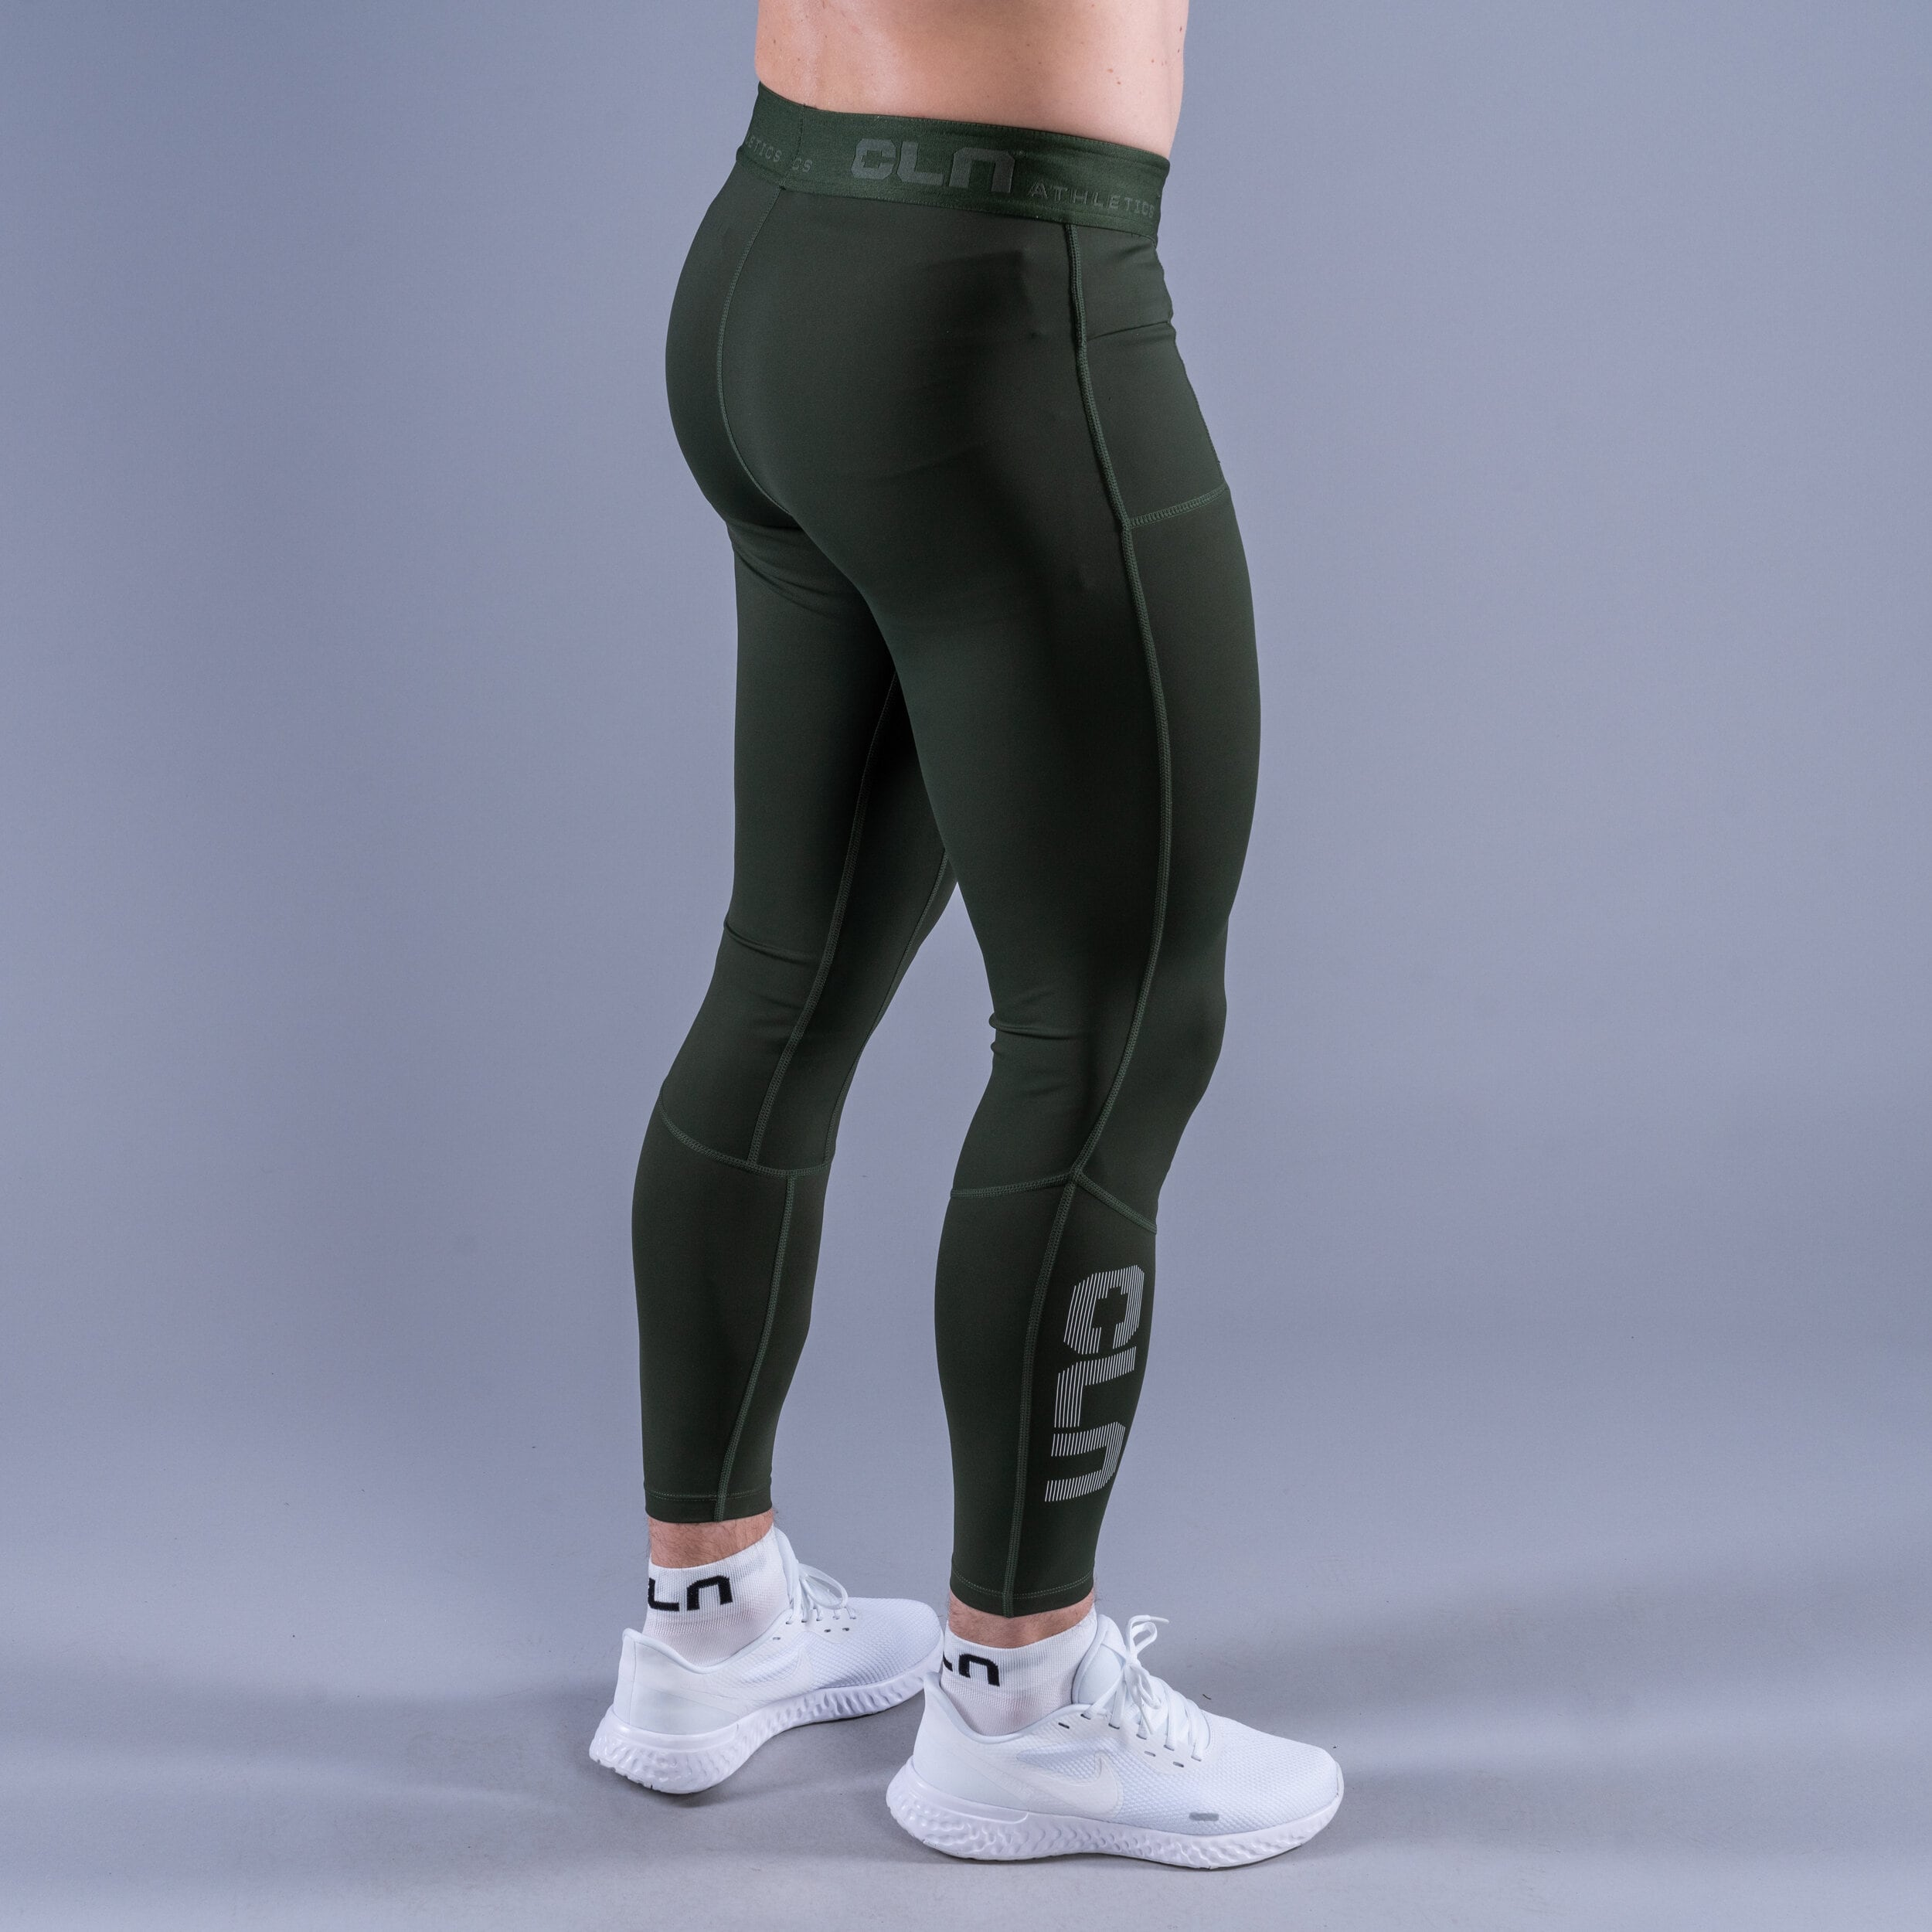 Package Tempo tights - Mist t-shirt Green